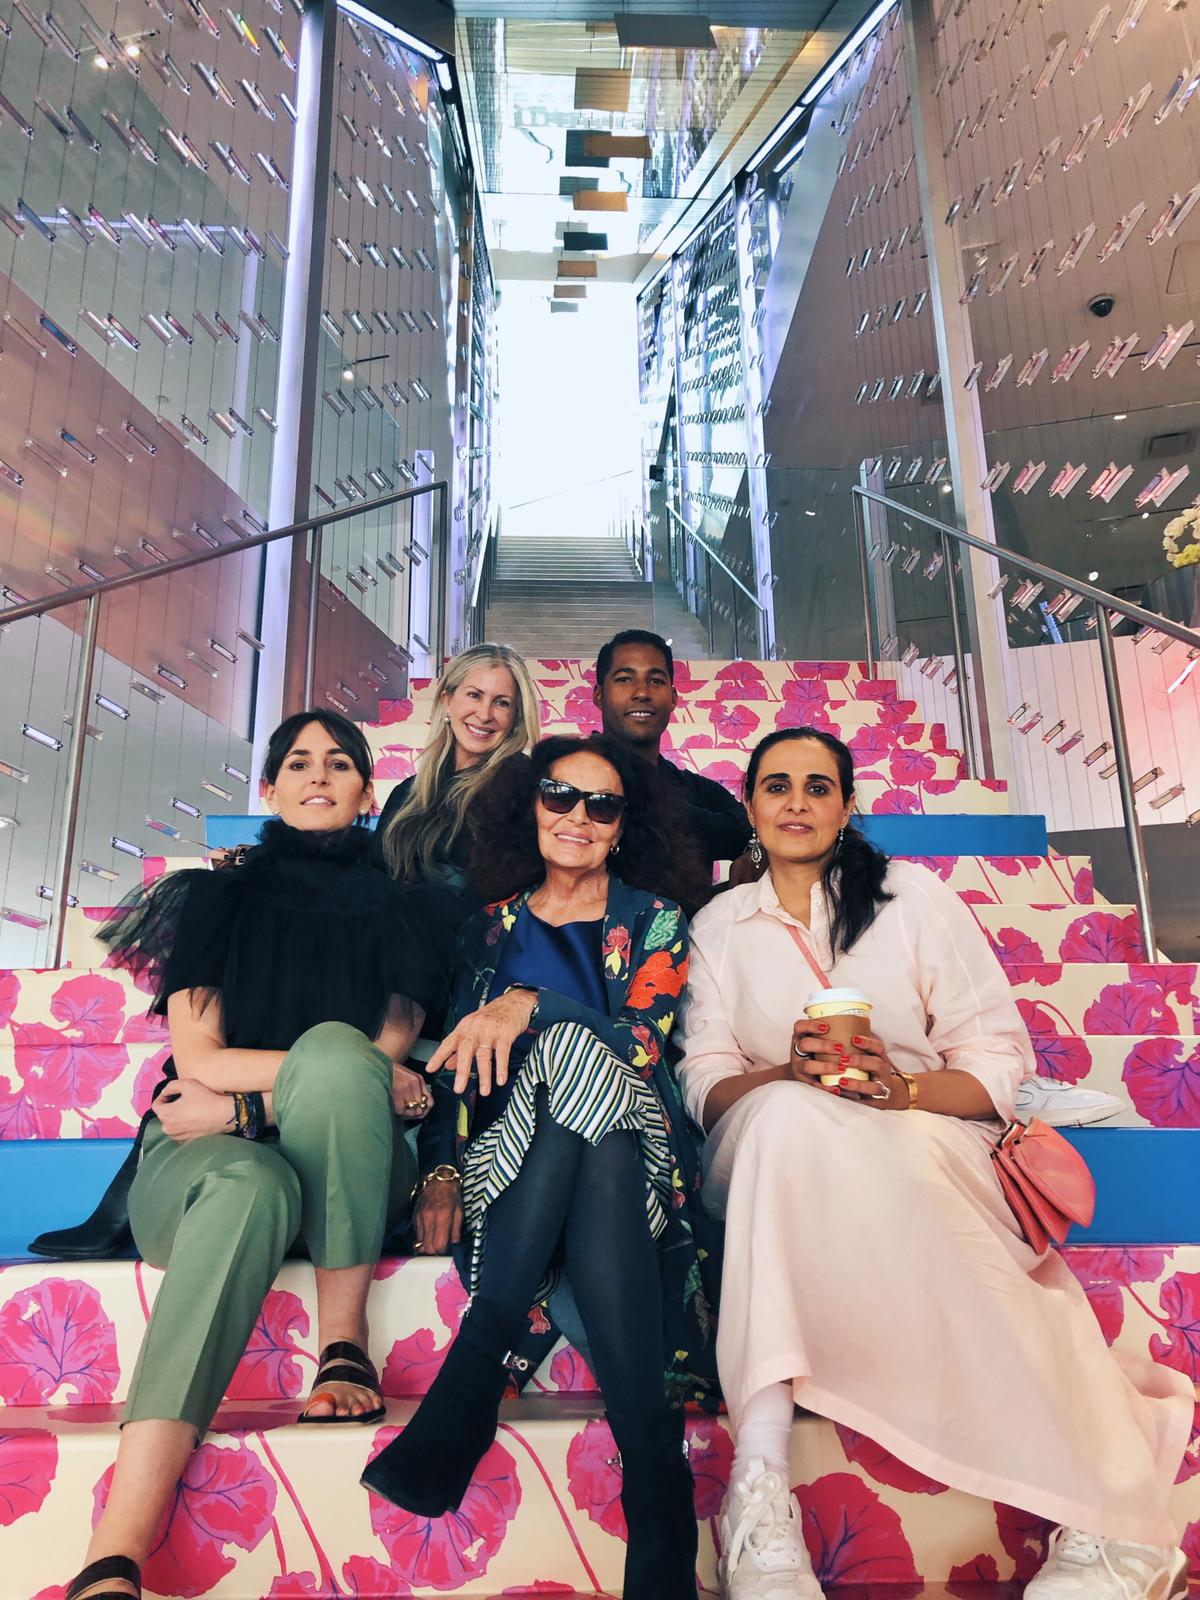 Carmen, pictured here with Tania Fares, Diane von Furstenberg, Hassan Pierre and Sheikha Al-Mayassa bint Hamad Al-Thani, saw the brand's new collection firsthand when she visited the Fashion Trust Arabia Pop-up at DVF's HQ.